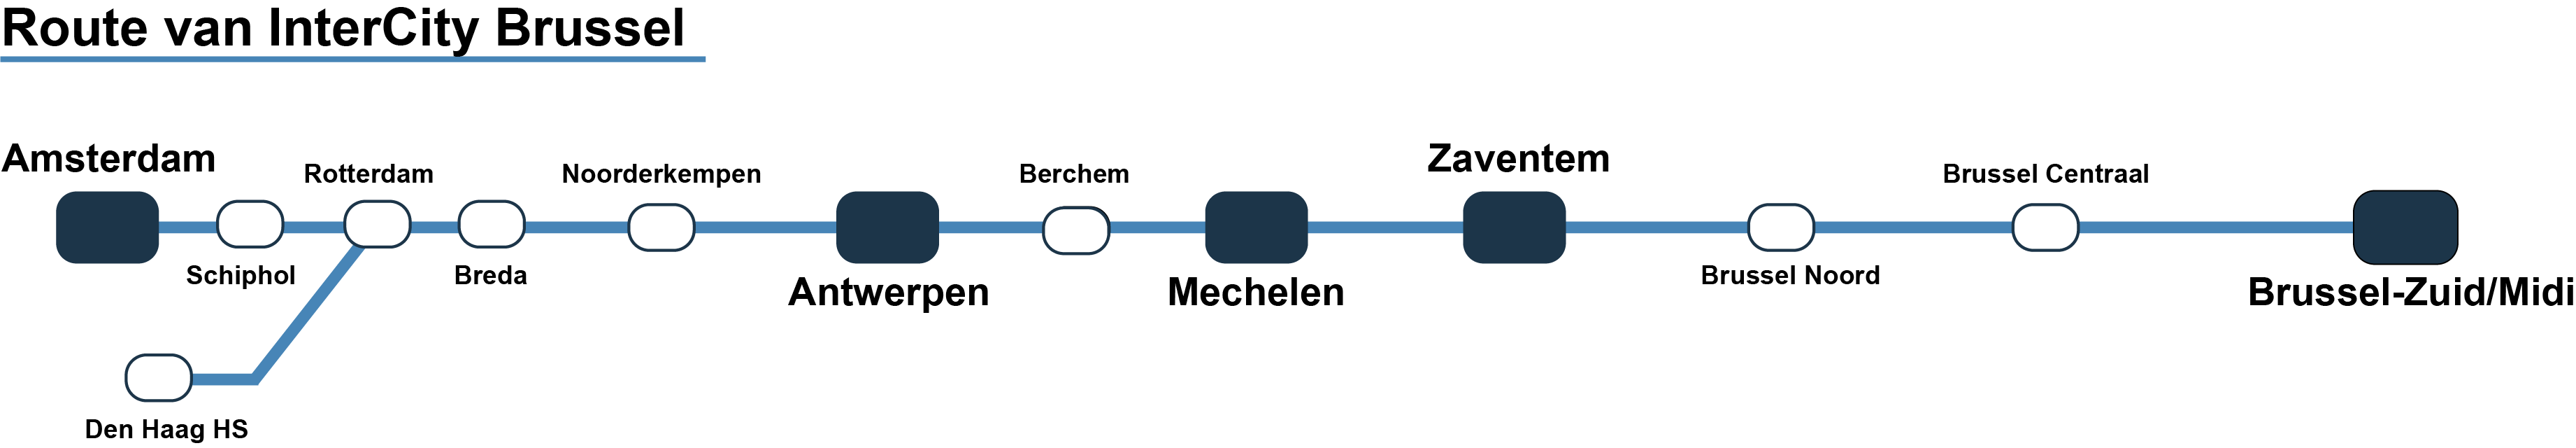 Route InterCity Brussel naar Eupen